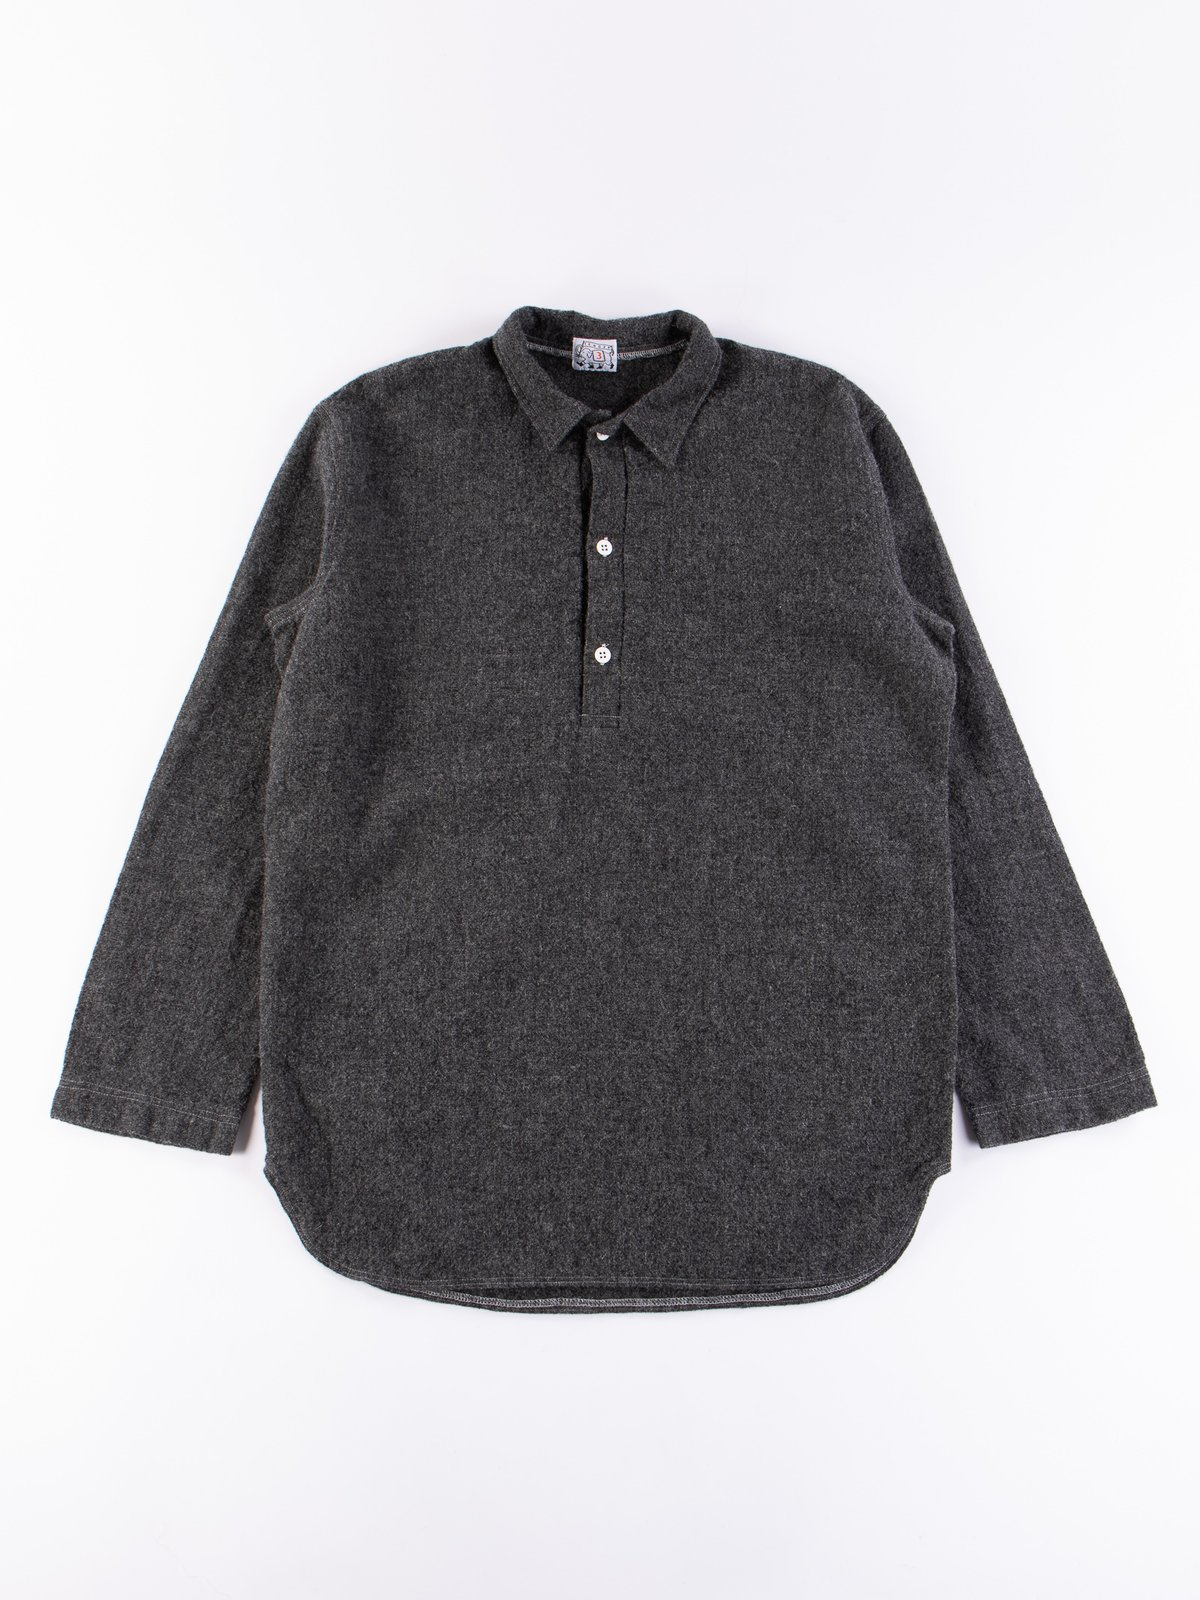 Charcoal Weavers Stock Pullover Tail Shirt - Image 1